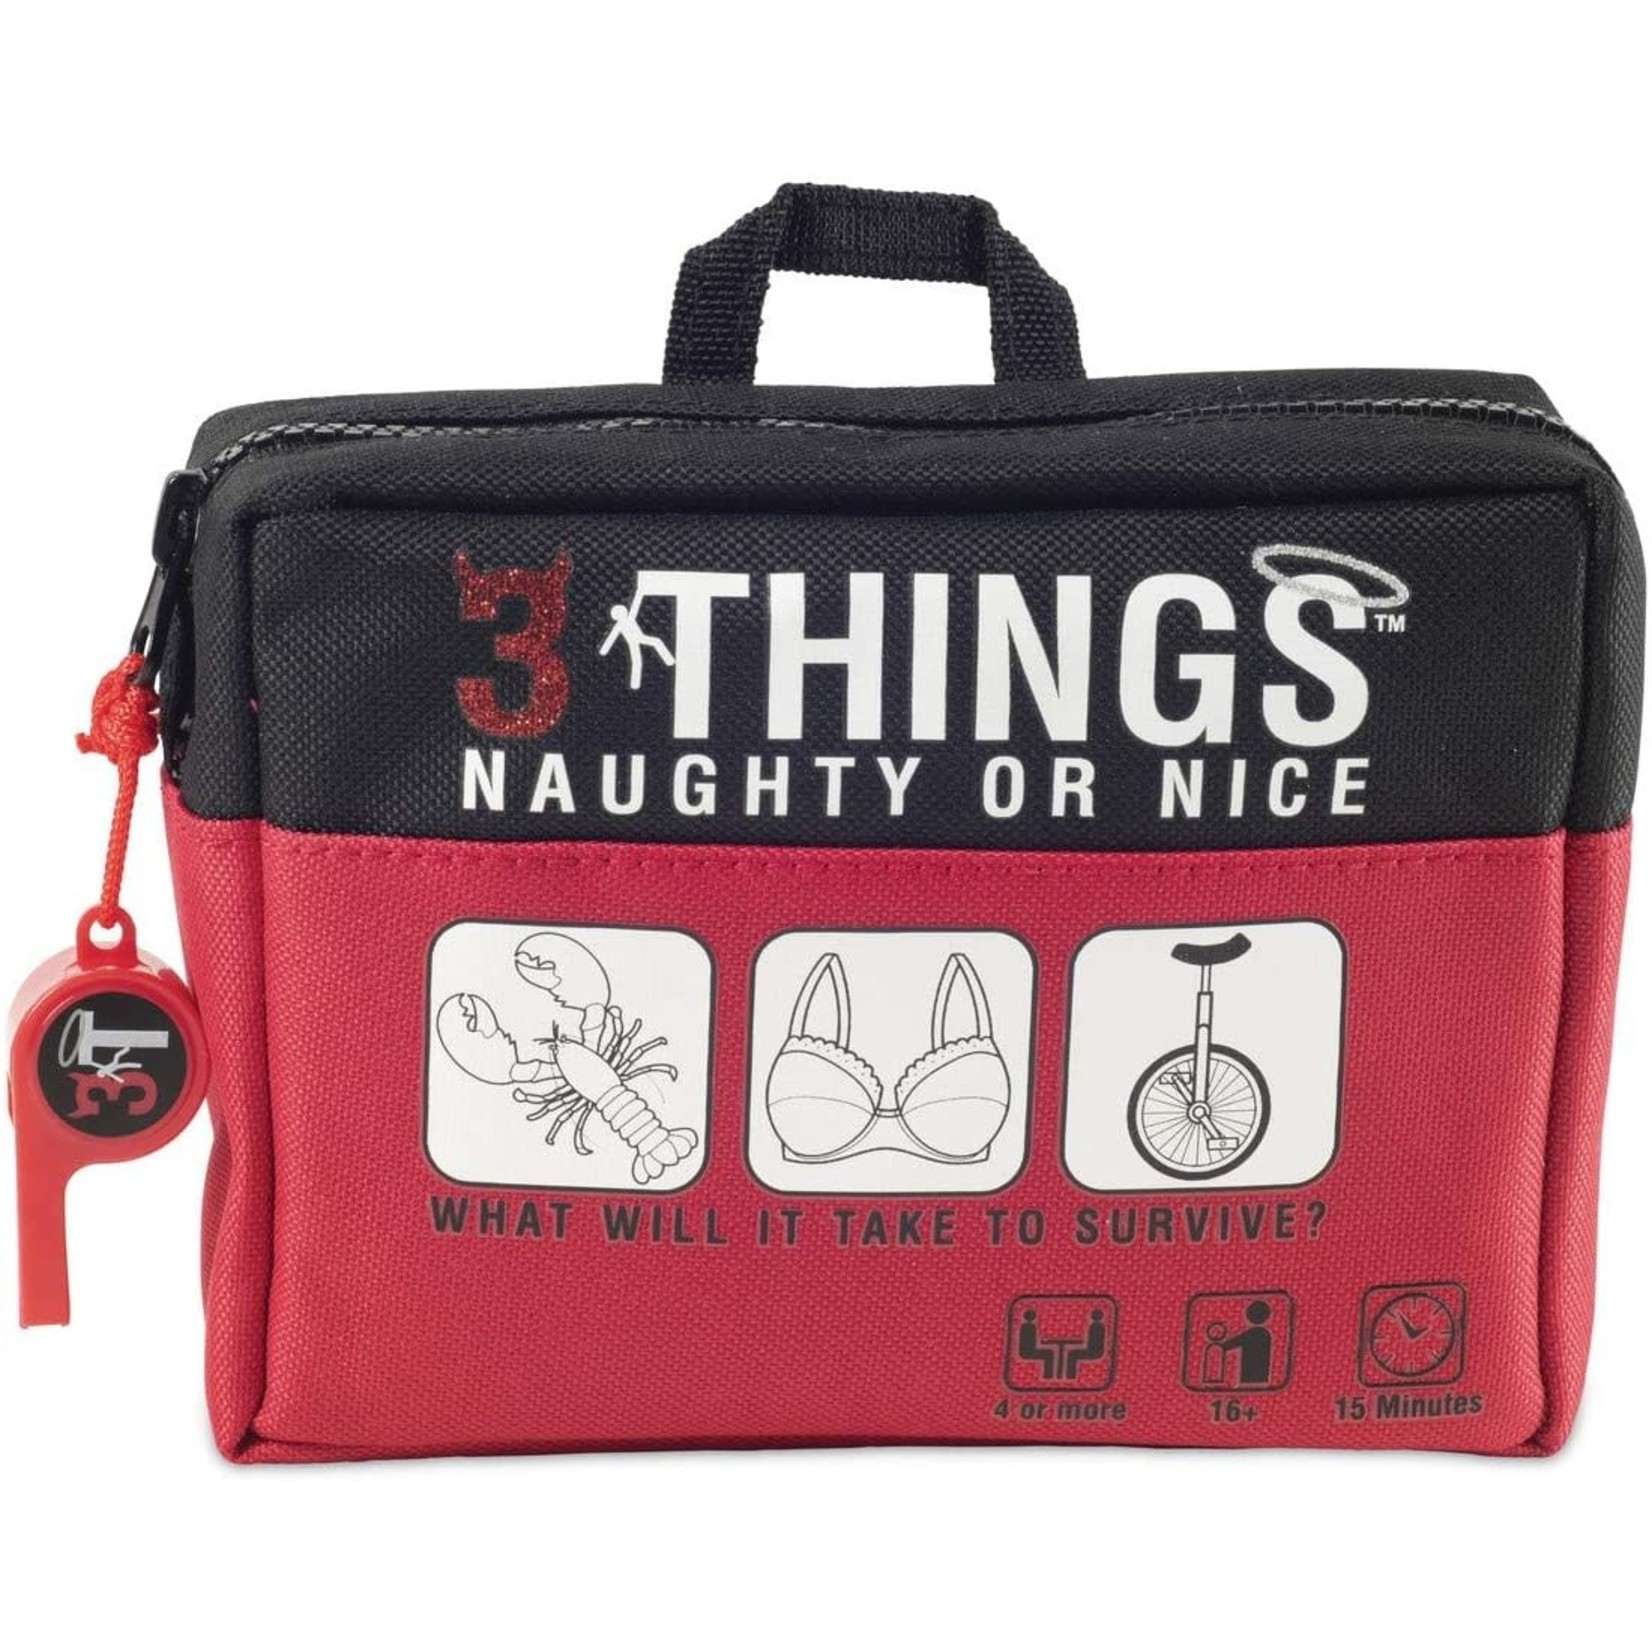 Shenanigames 3 Things Naughty Or Nice